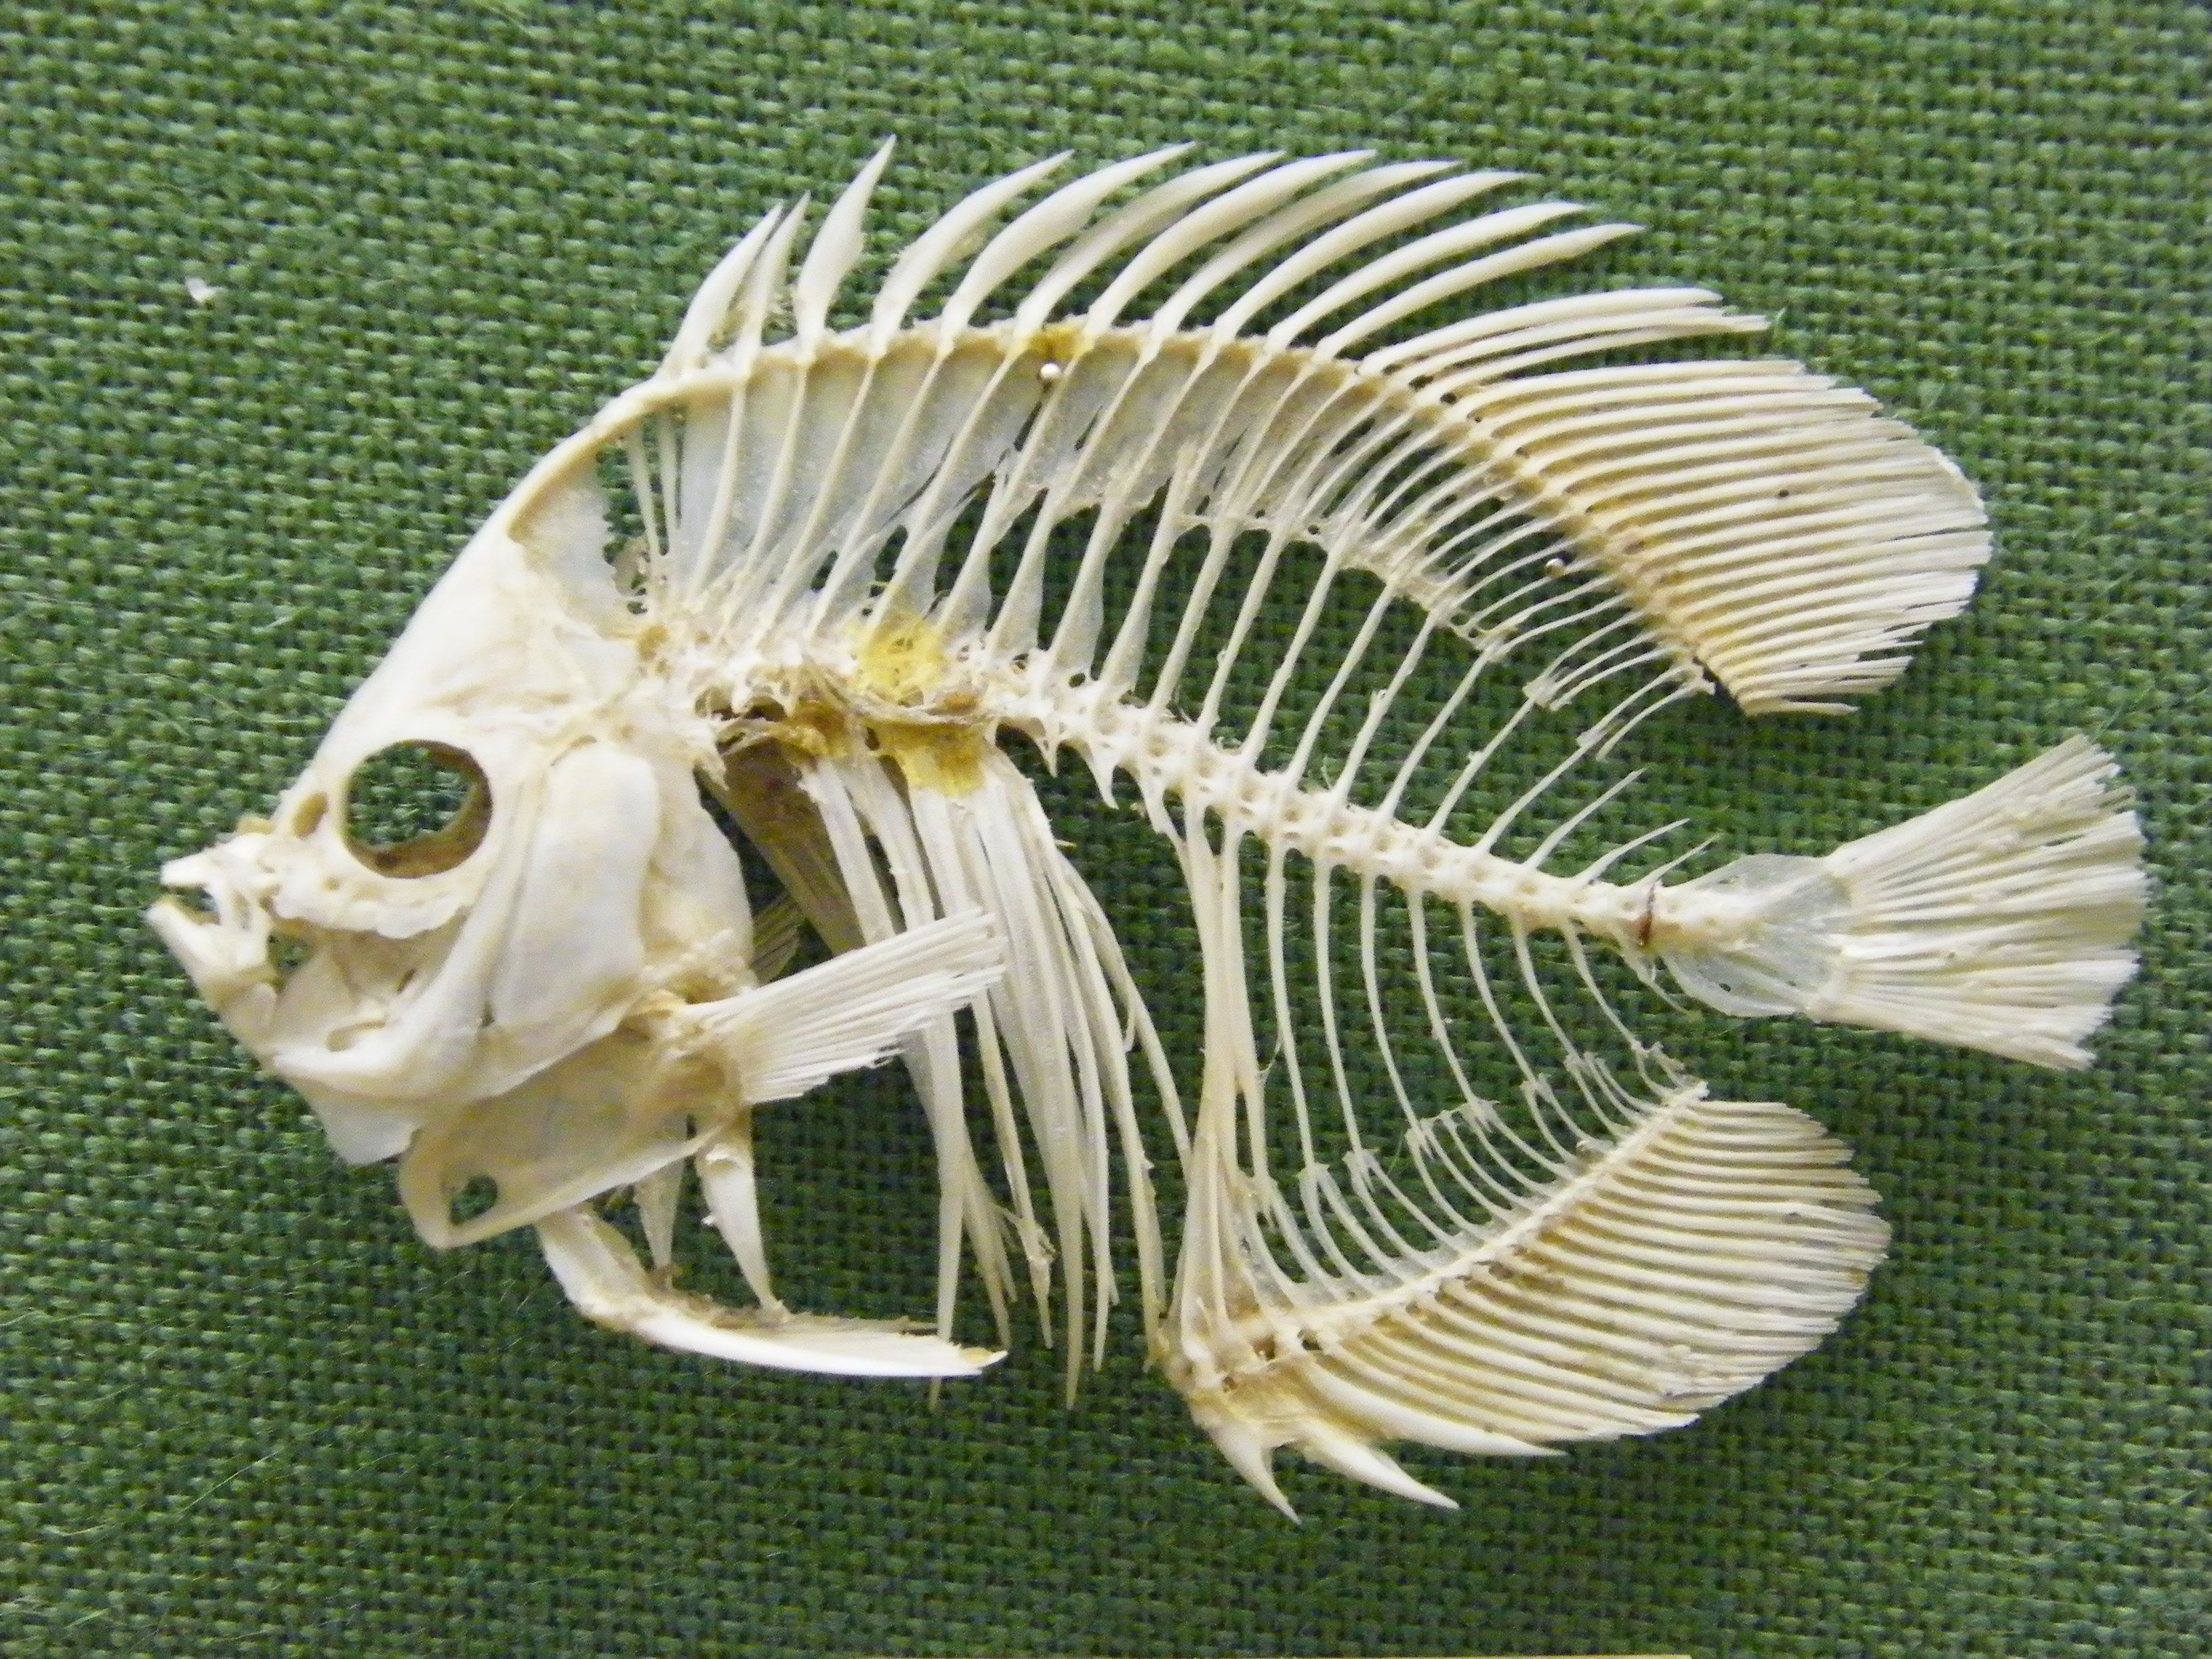 northern pike skeleton - Google Search | Macabre | Pinterest ...